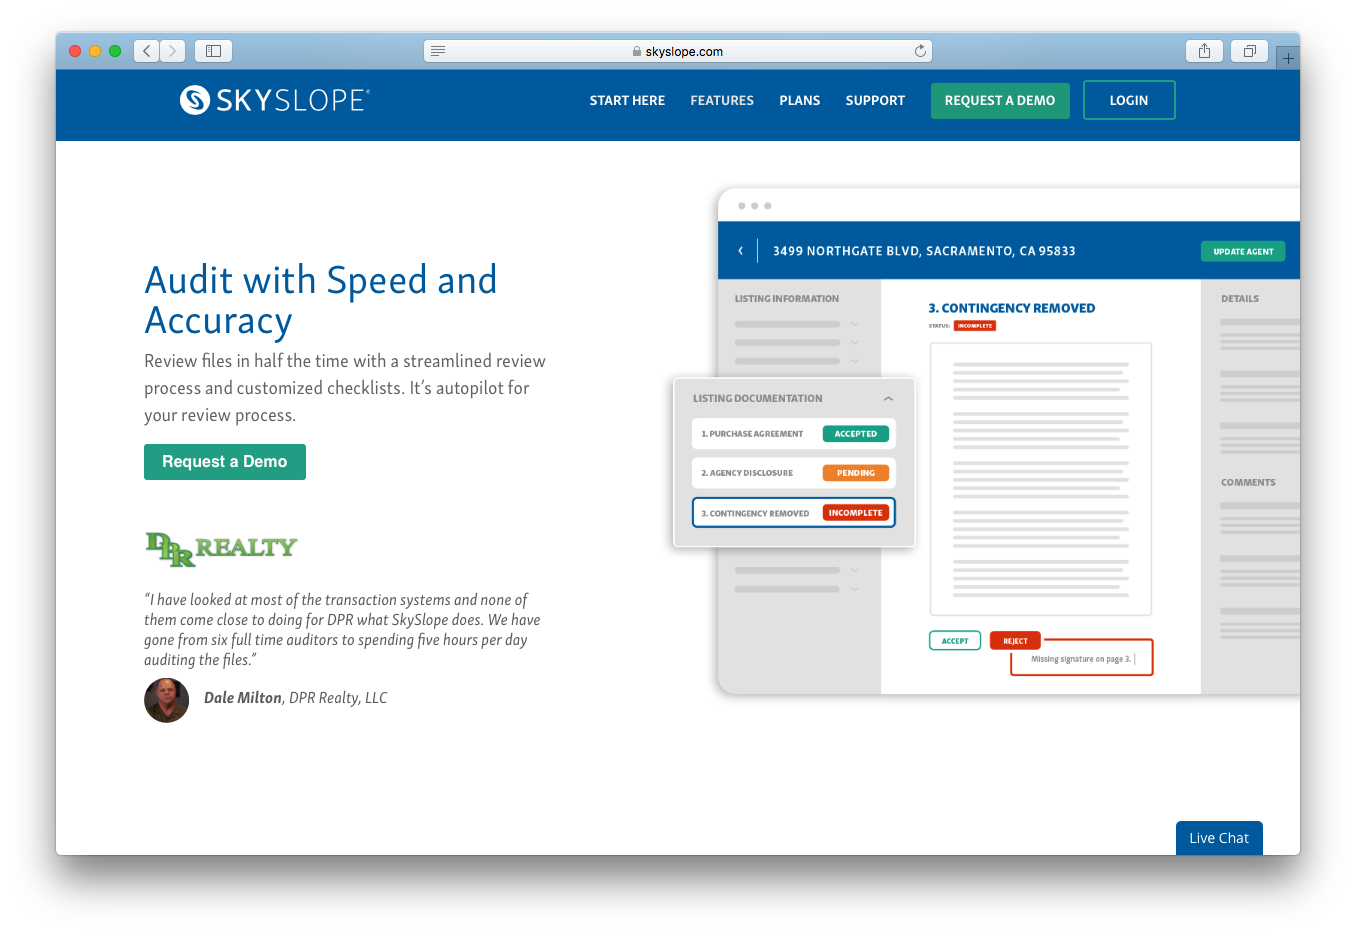 SkySlope audit review process speed accuracy